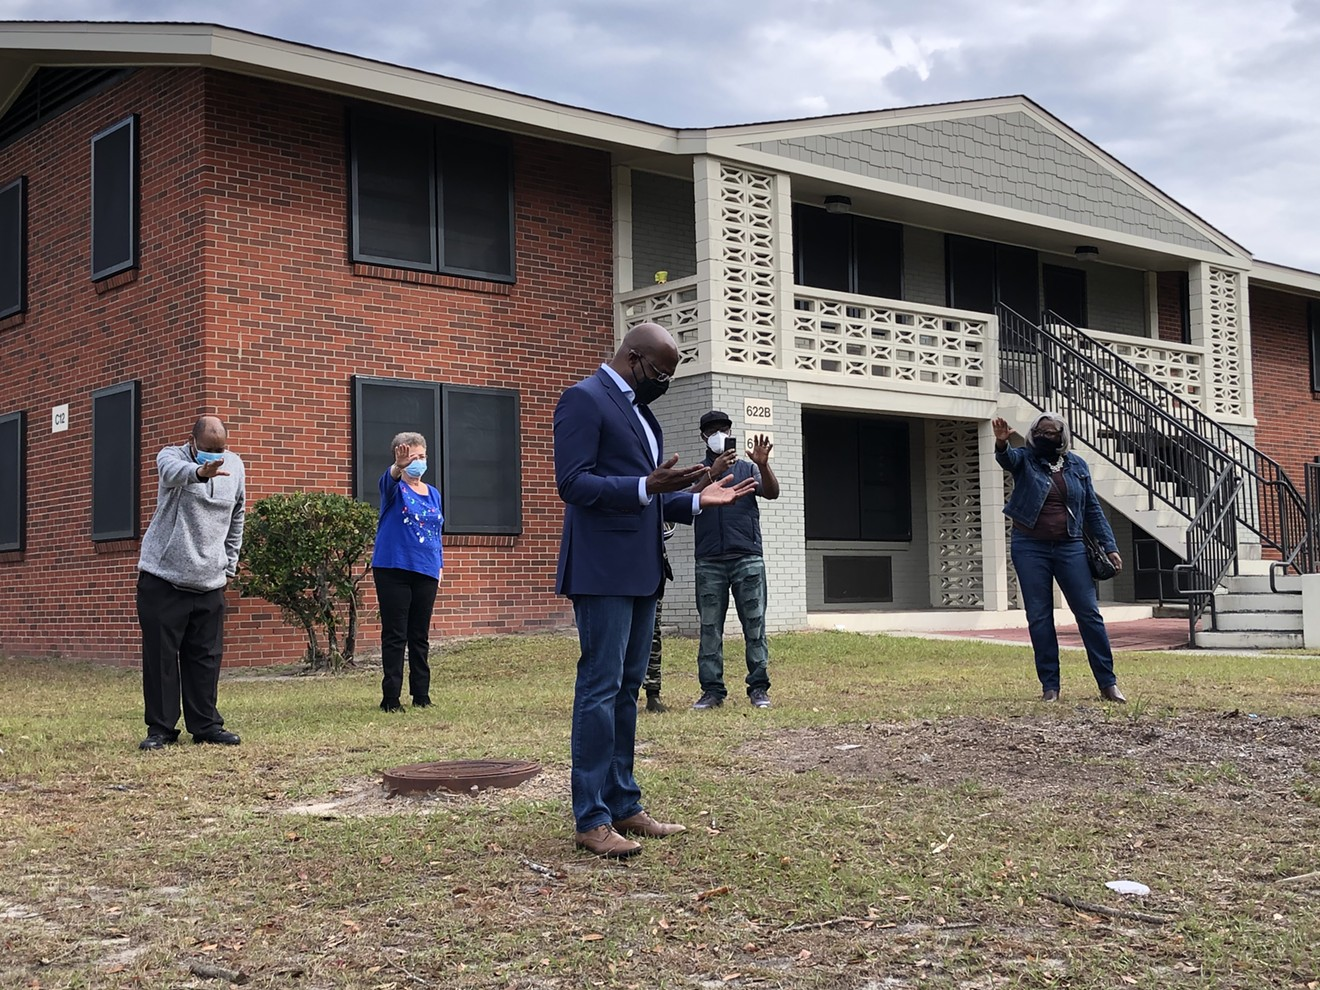 U.S. Senate candidate Raphael Warnock stands in the middle of a prayer circle in front of his childhood home at Savannah's Kayton Homes housing project on Dec. 12.